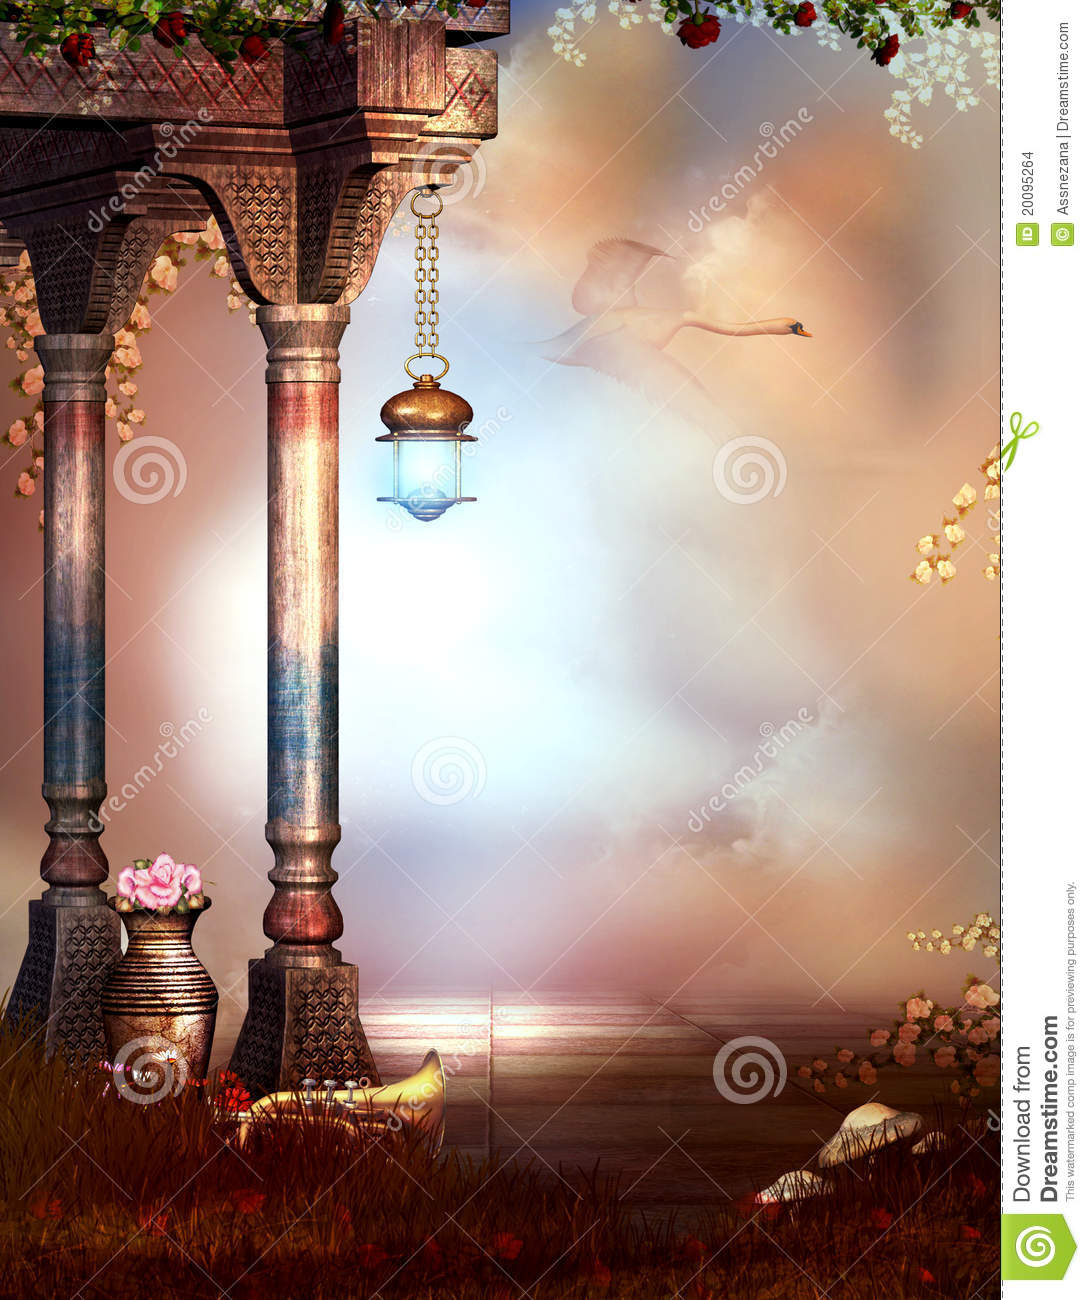 fantasy garden with a sky background stock illustration